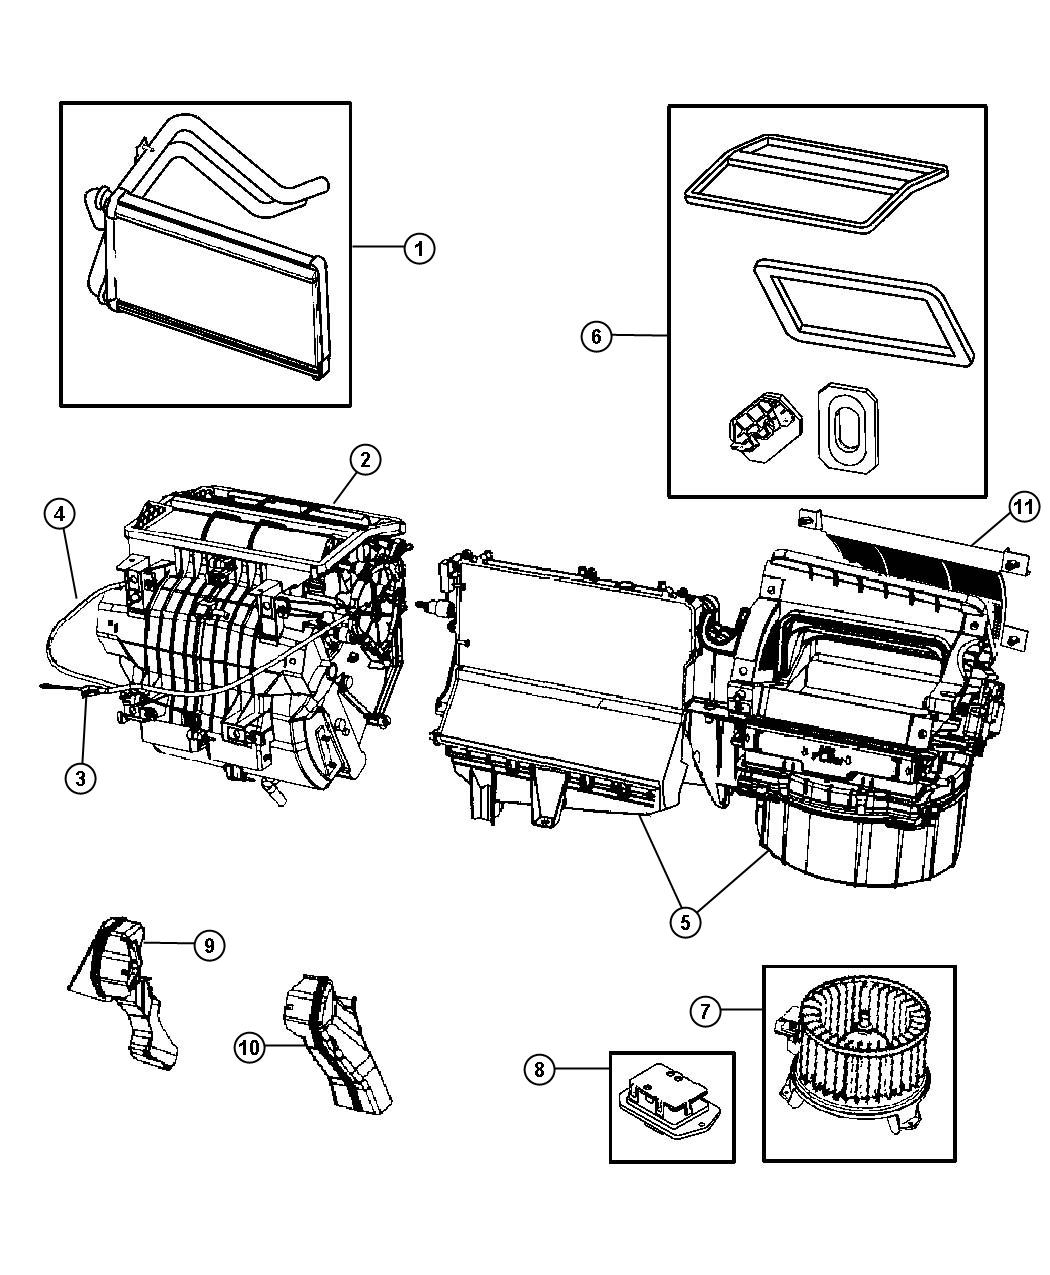 Jeep Patriot Seal Kit Used For A C And Heater Unit